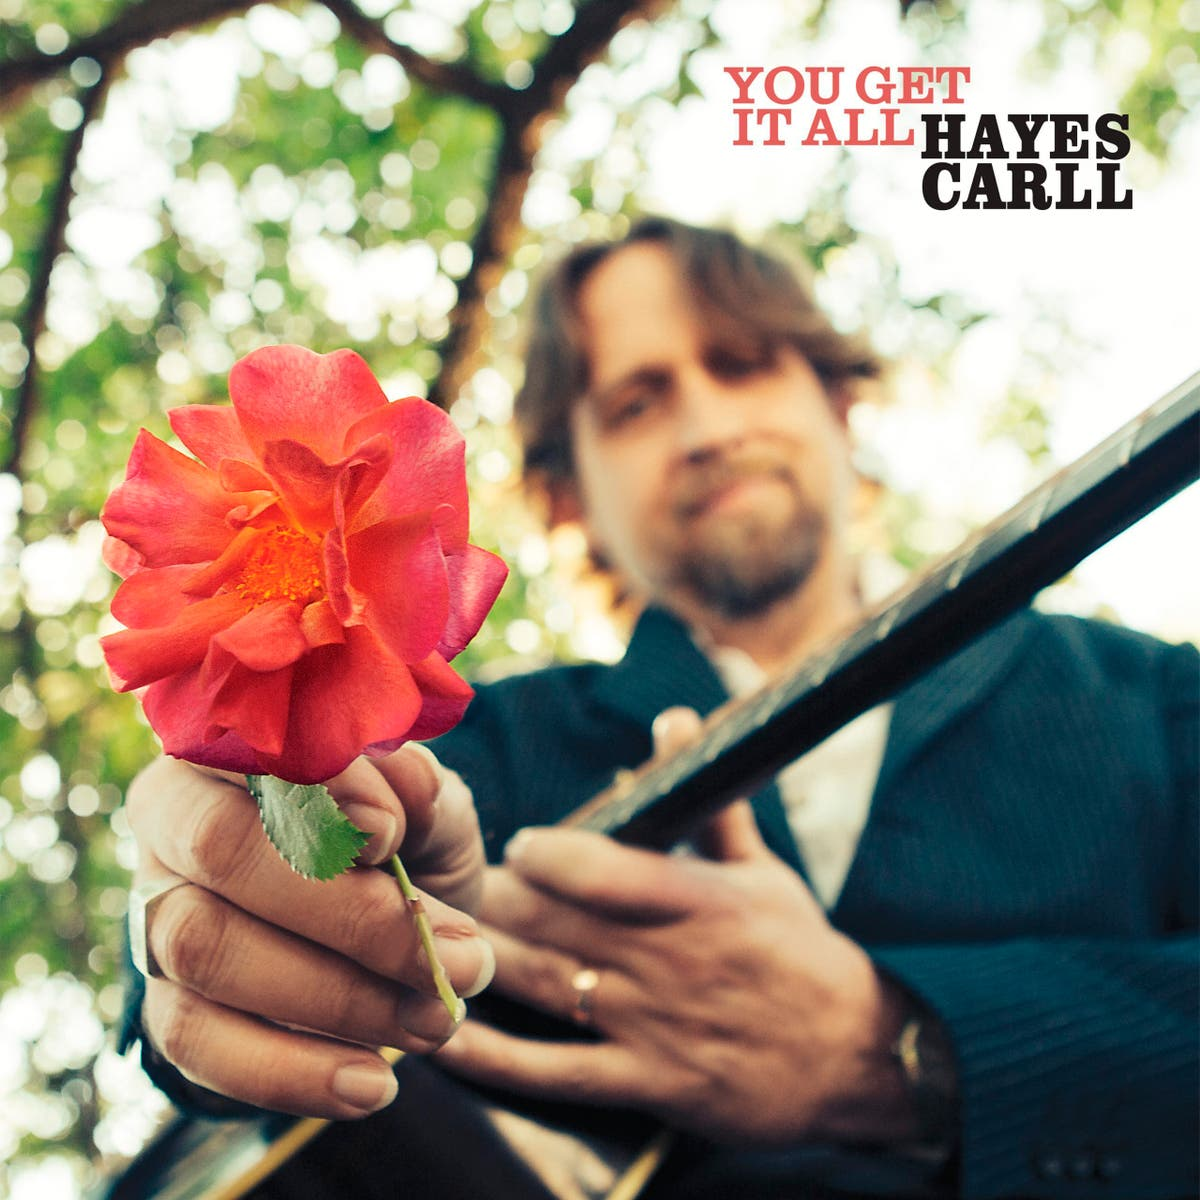 Anmeldelse: Hayes Carll tackles serious topics with droll humor